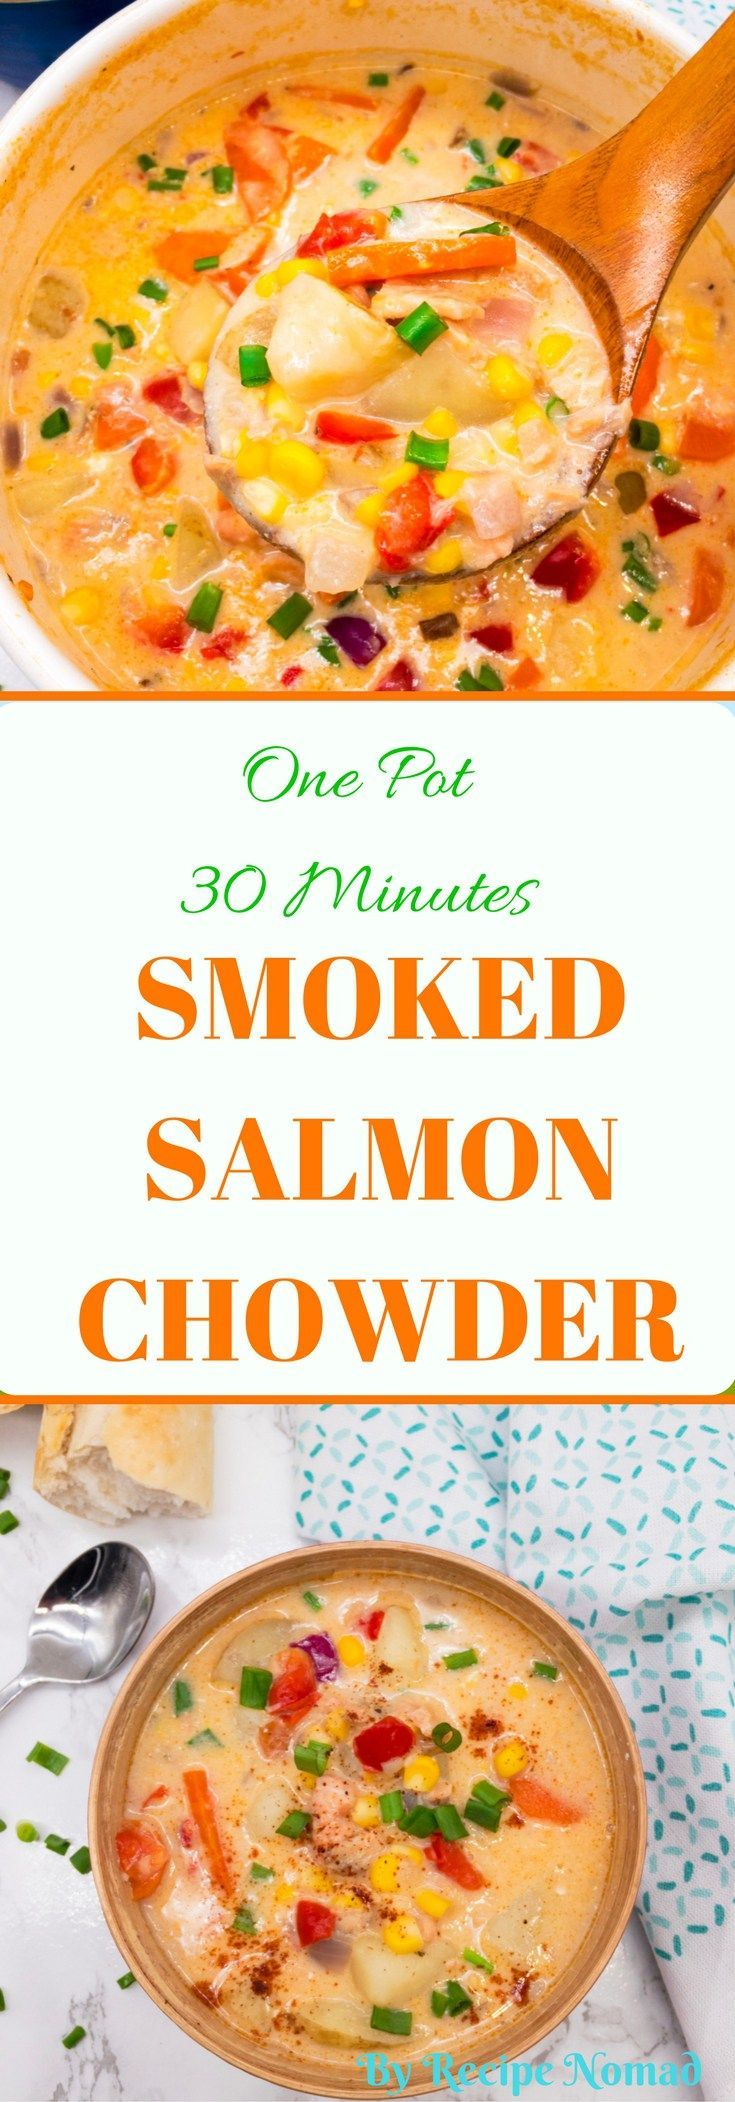 The secret to my One Pot 30 Minutes Smoked Salmon Chowder? Fresh vegetables, the best smoked salmon and a spoonful of cream cheese to give it an extra creamy flavor!   One Pot 30 Minutes Smoked Salmon Chowder | Recipe Nomad  http://www.recipenomad.com/one-pot-30-minutes-smoked-salmon-chowder/